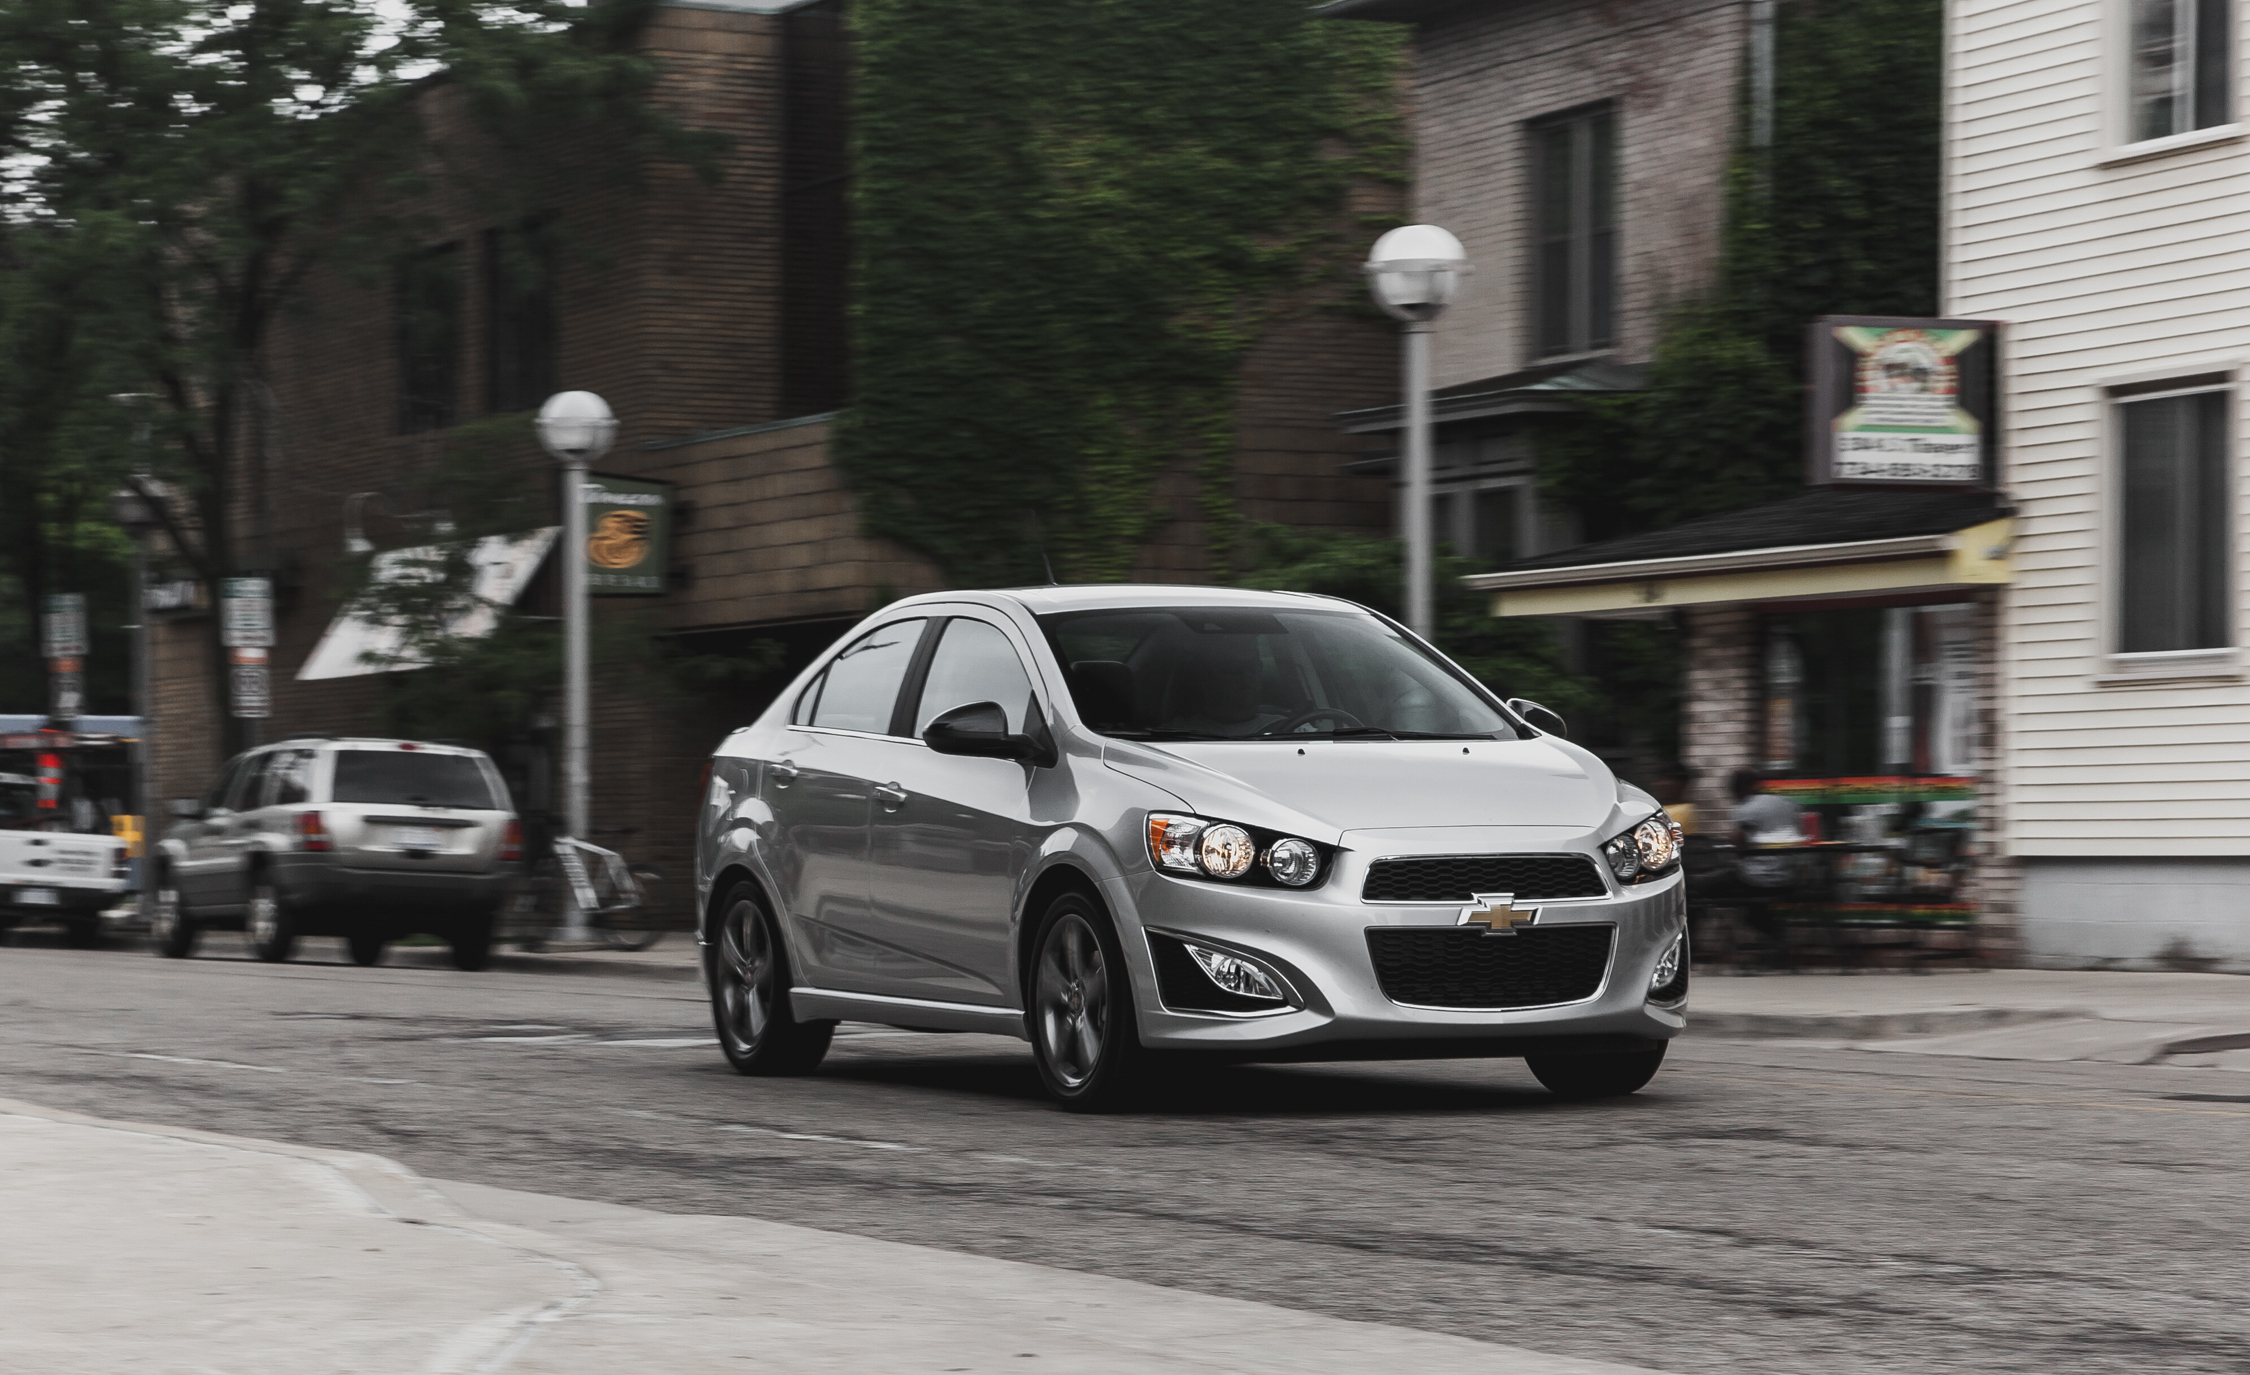 2014 Chevrolet Sonic RS Sedan (Photo 12 of 27)